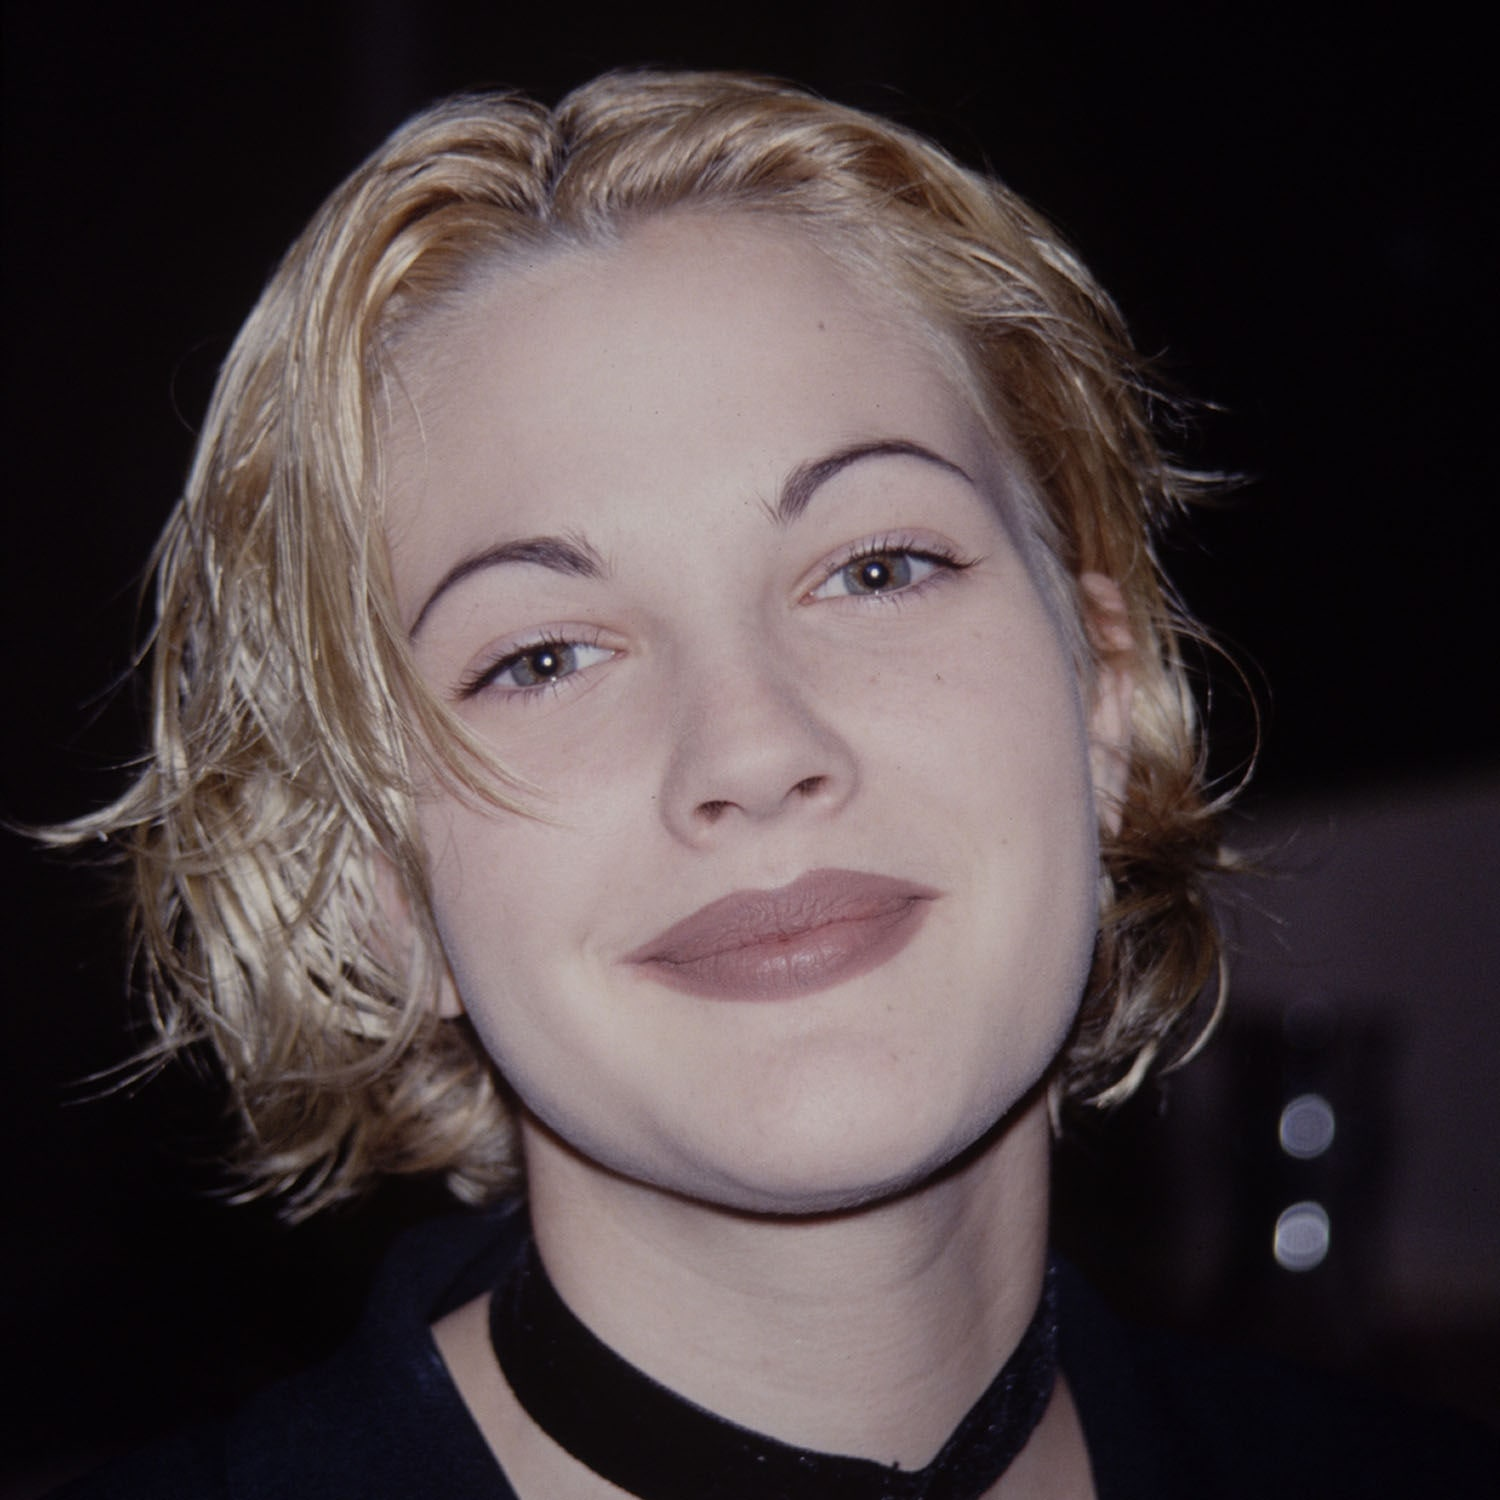 Thin Eyebrows In The 90s